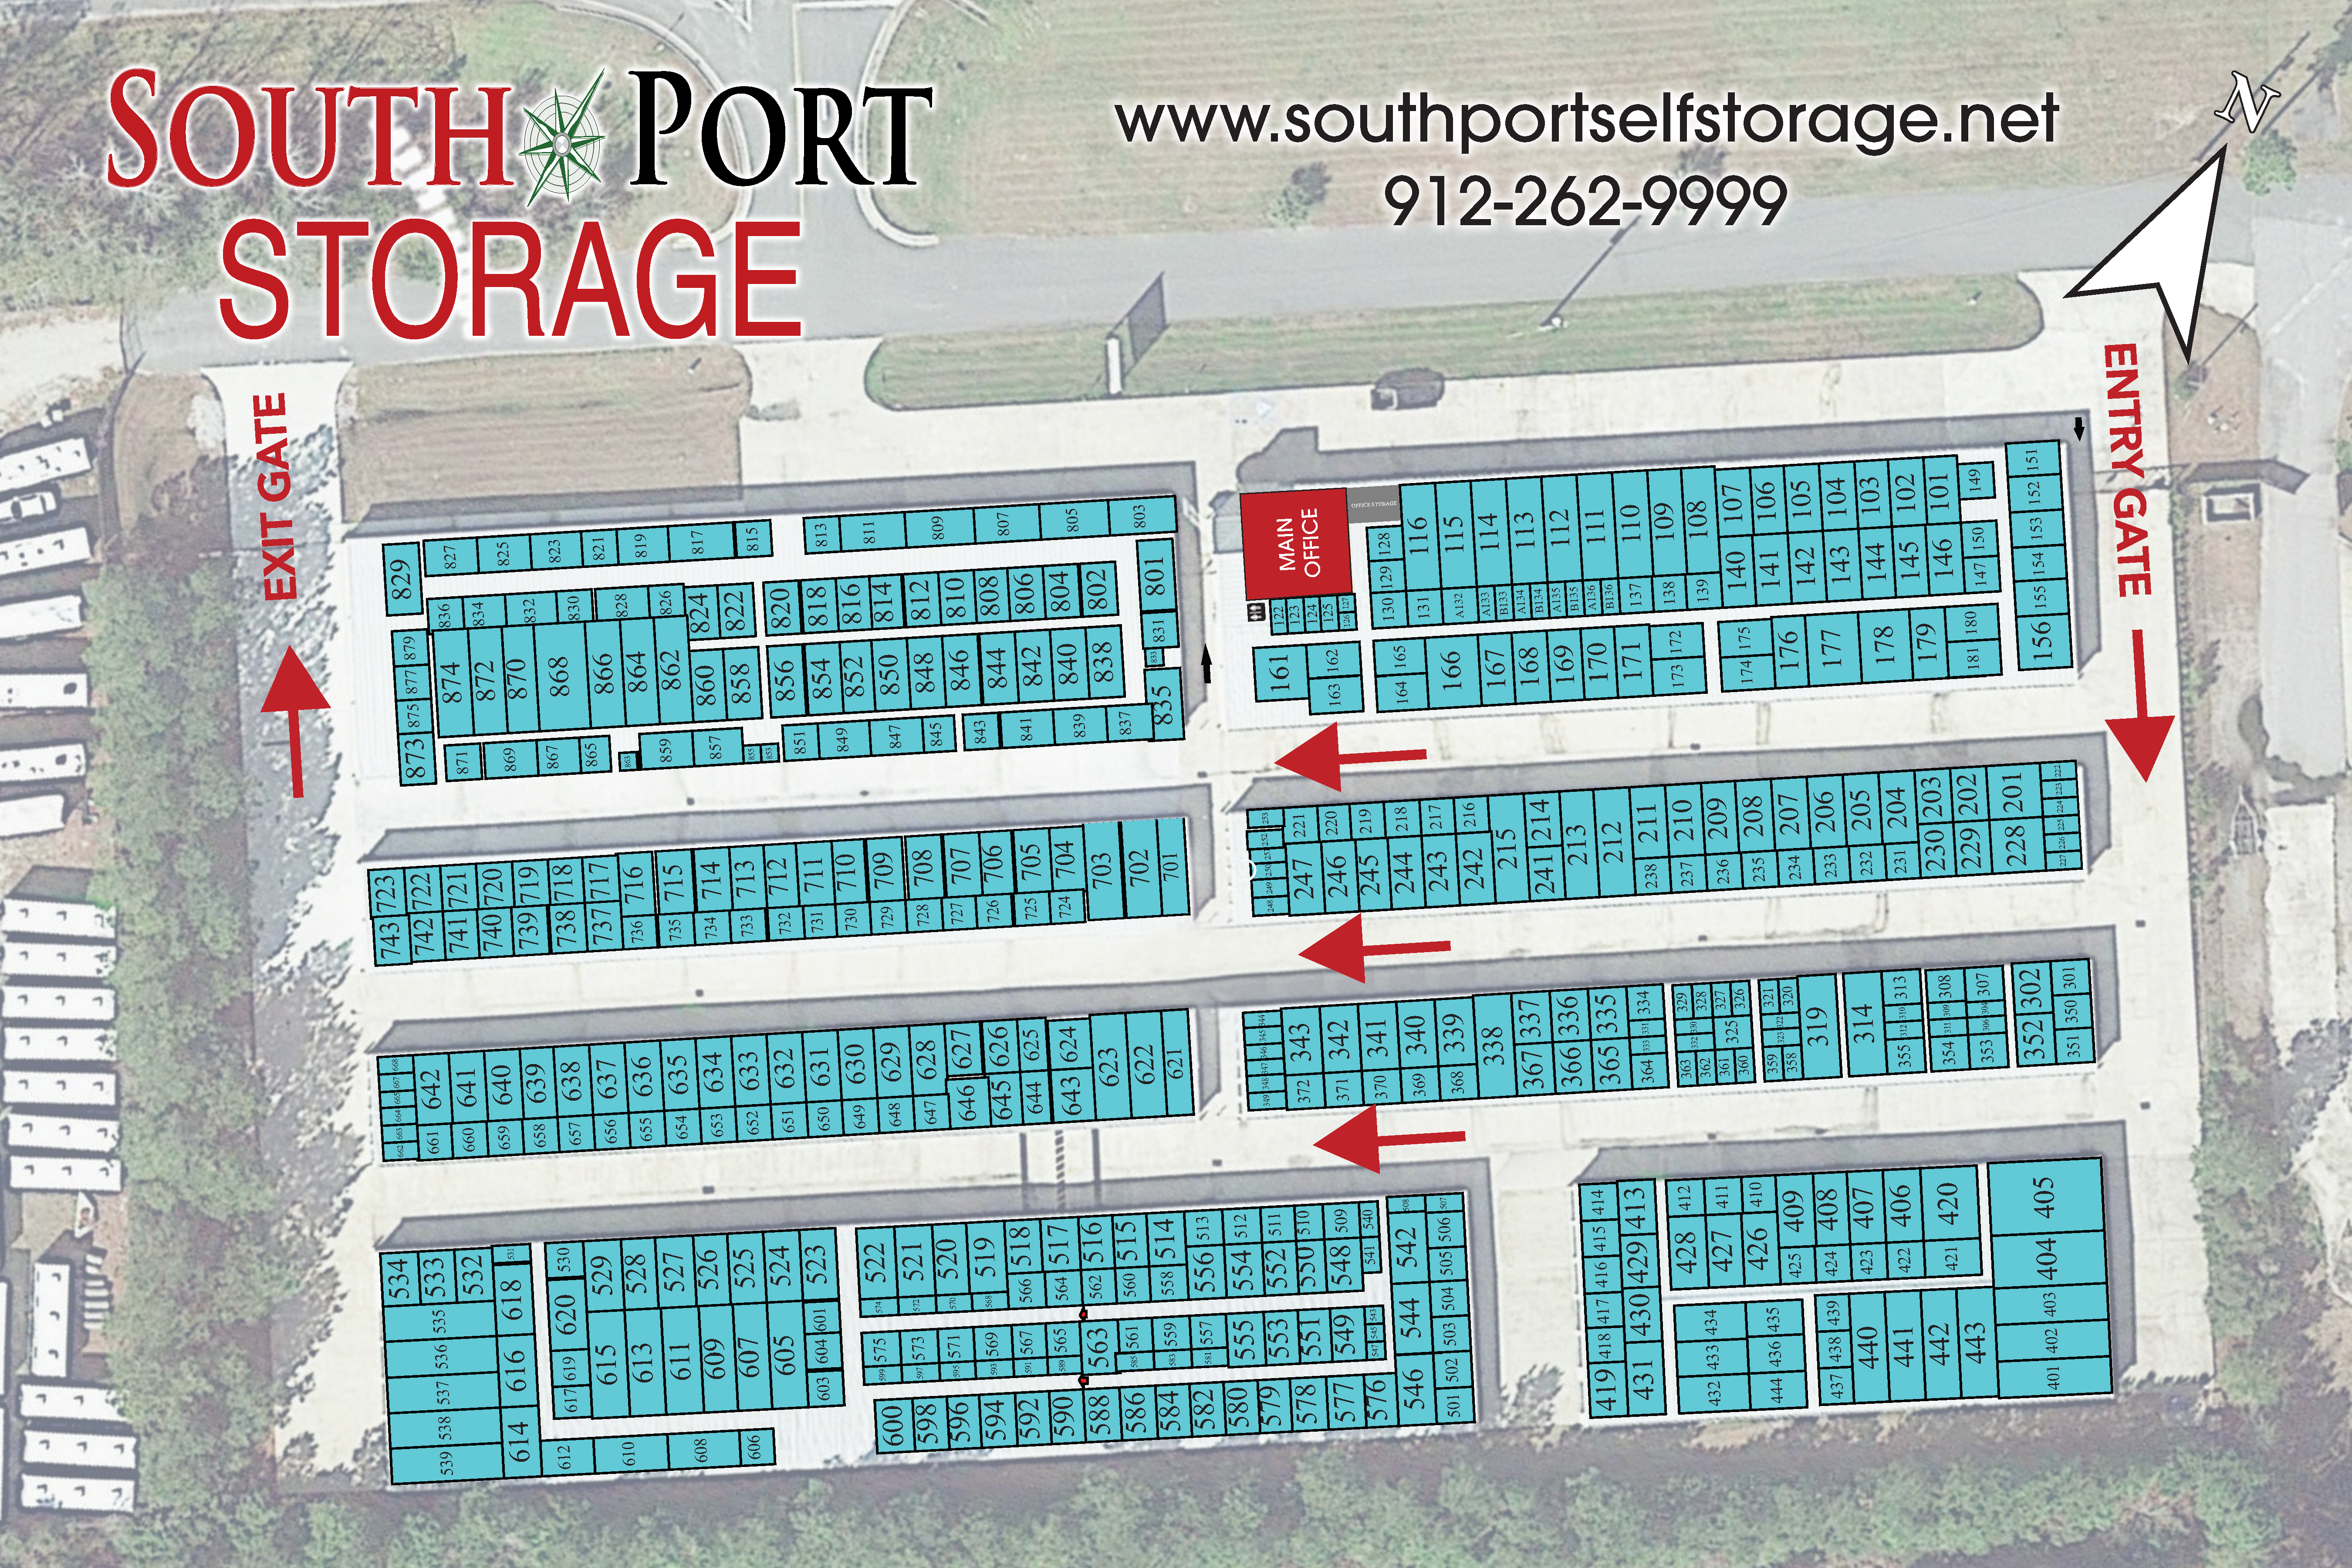 South Port Storage Map